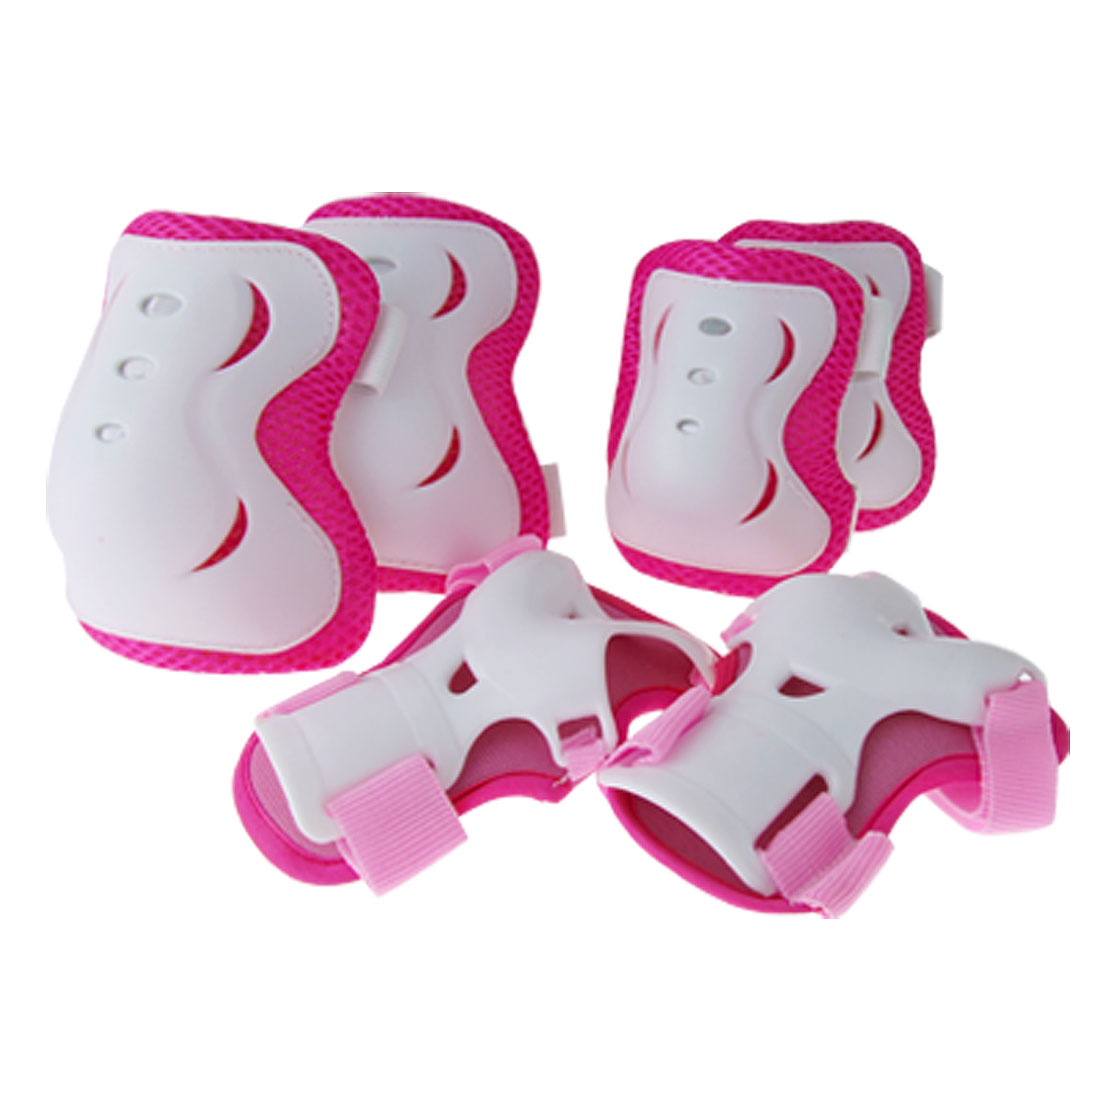 Kids Skating Sports Support for Elbow Wrist Knee 3 Pair